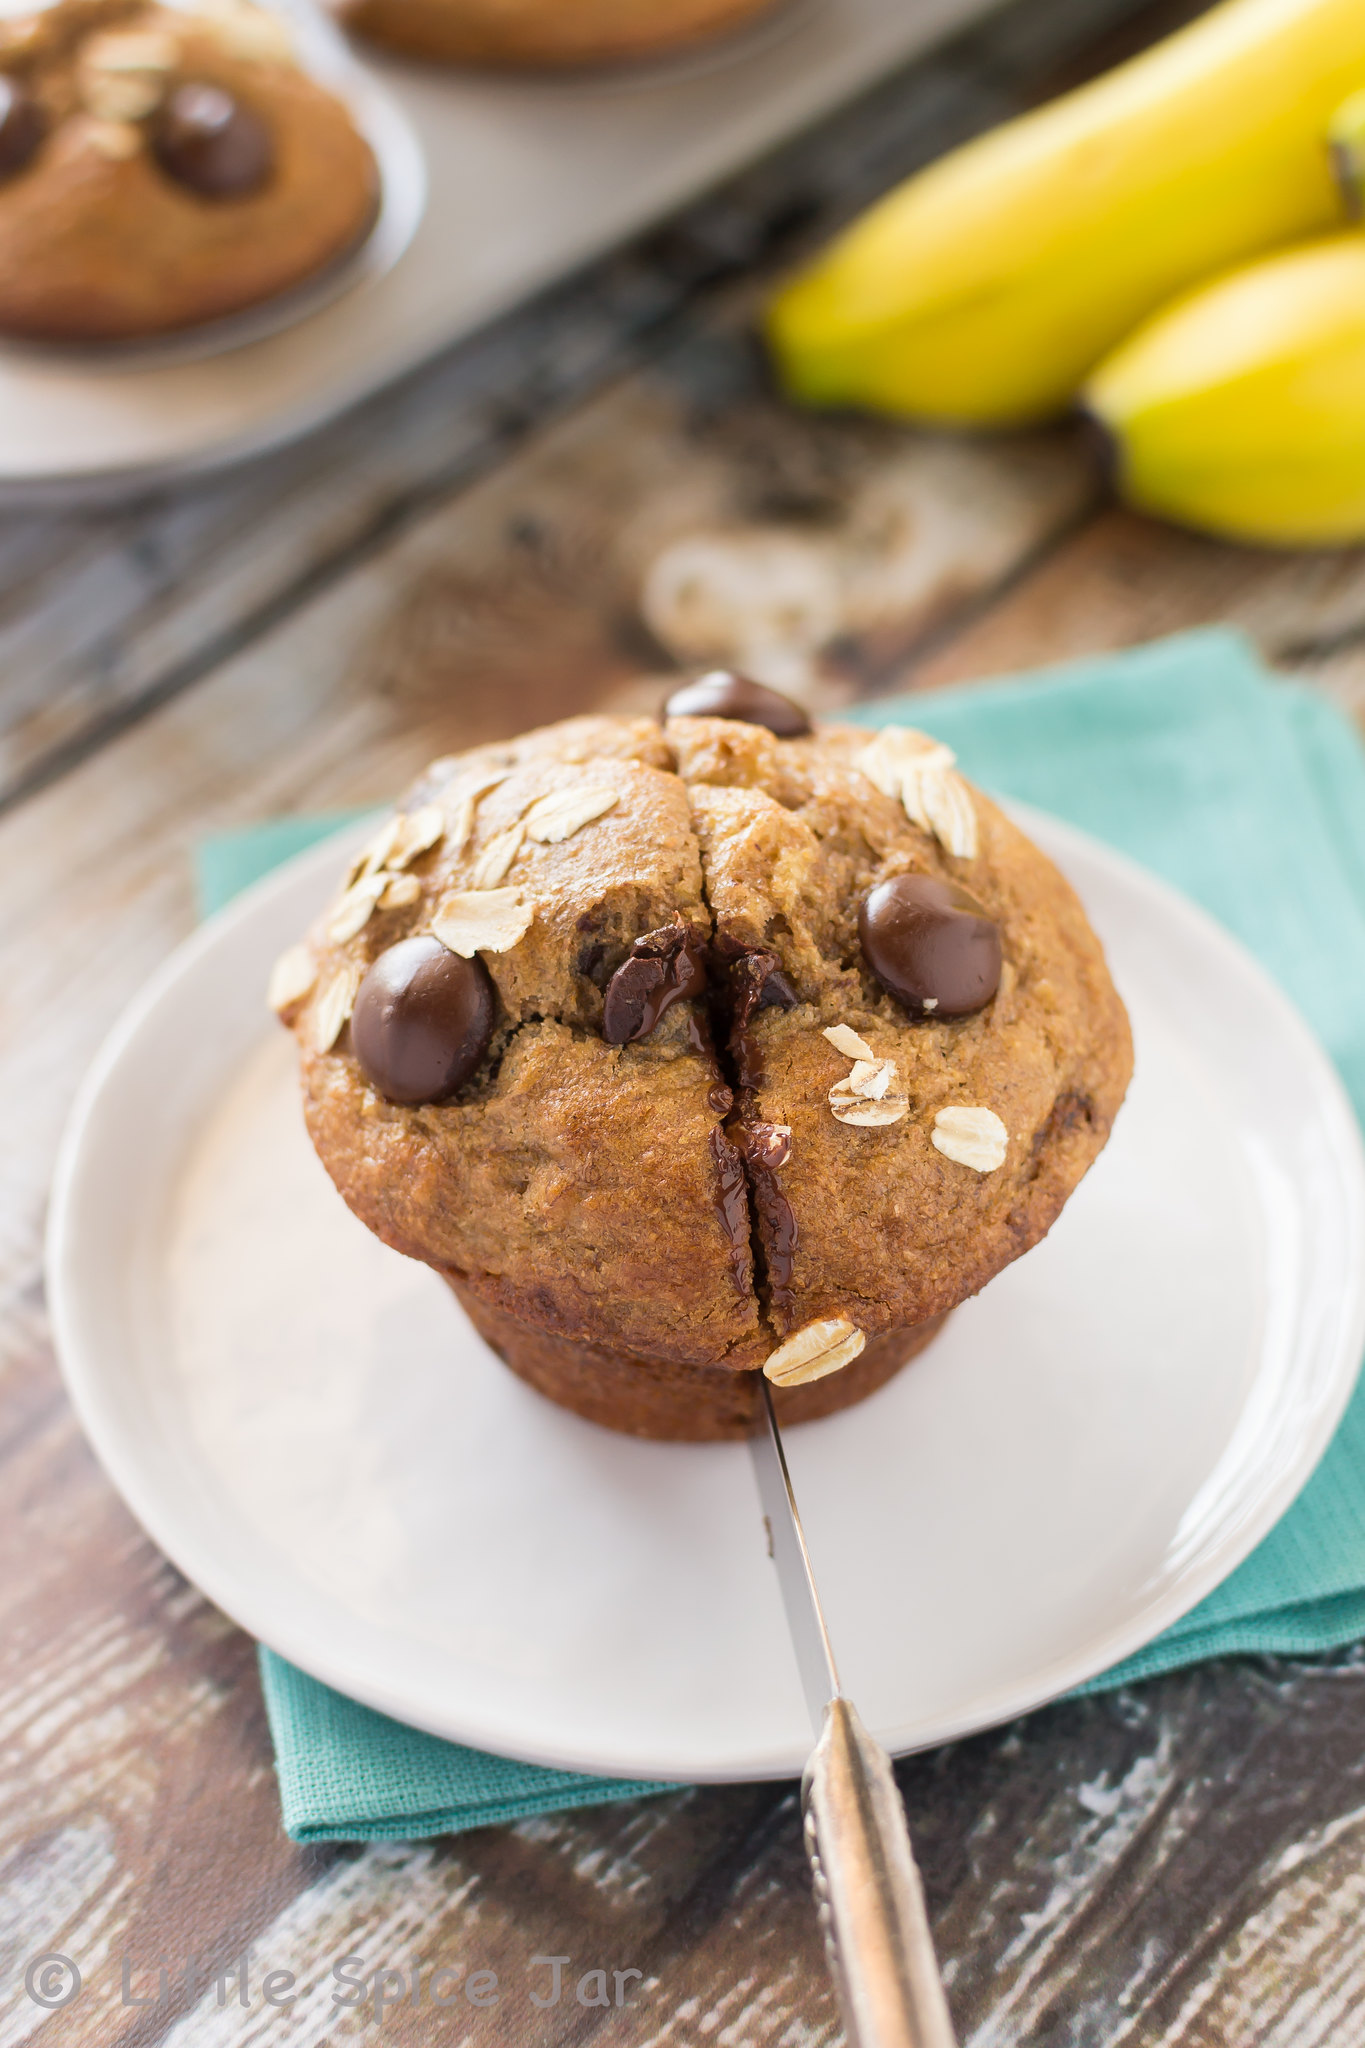 chocolate chip muffin slicing with knife on white plate